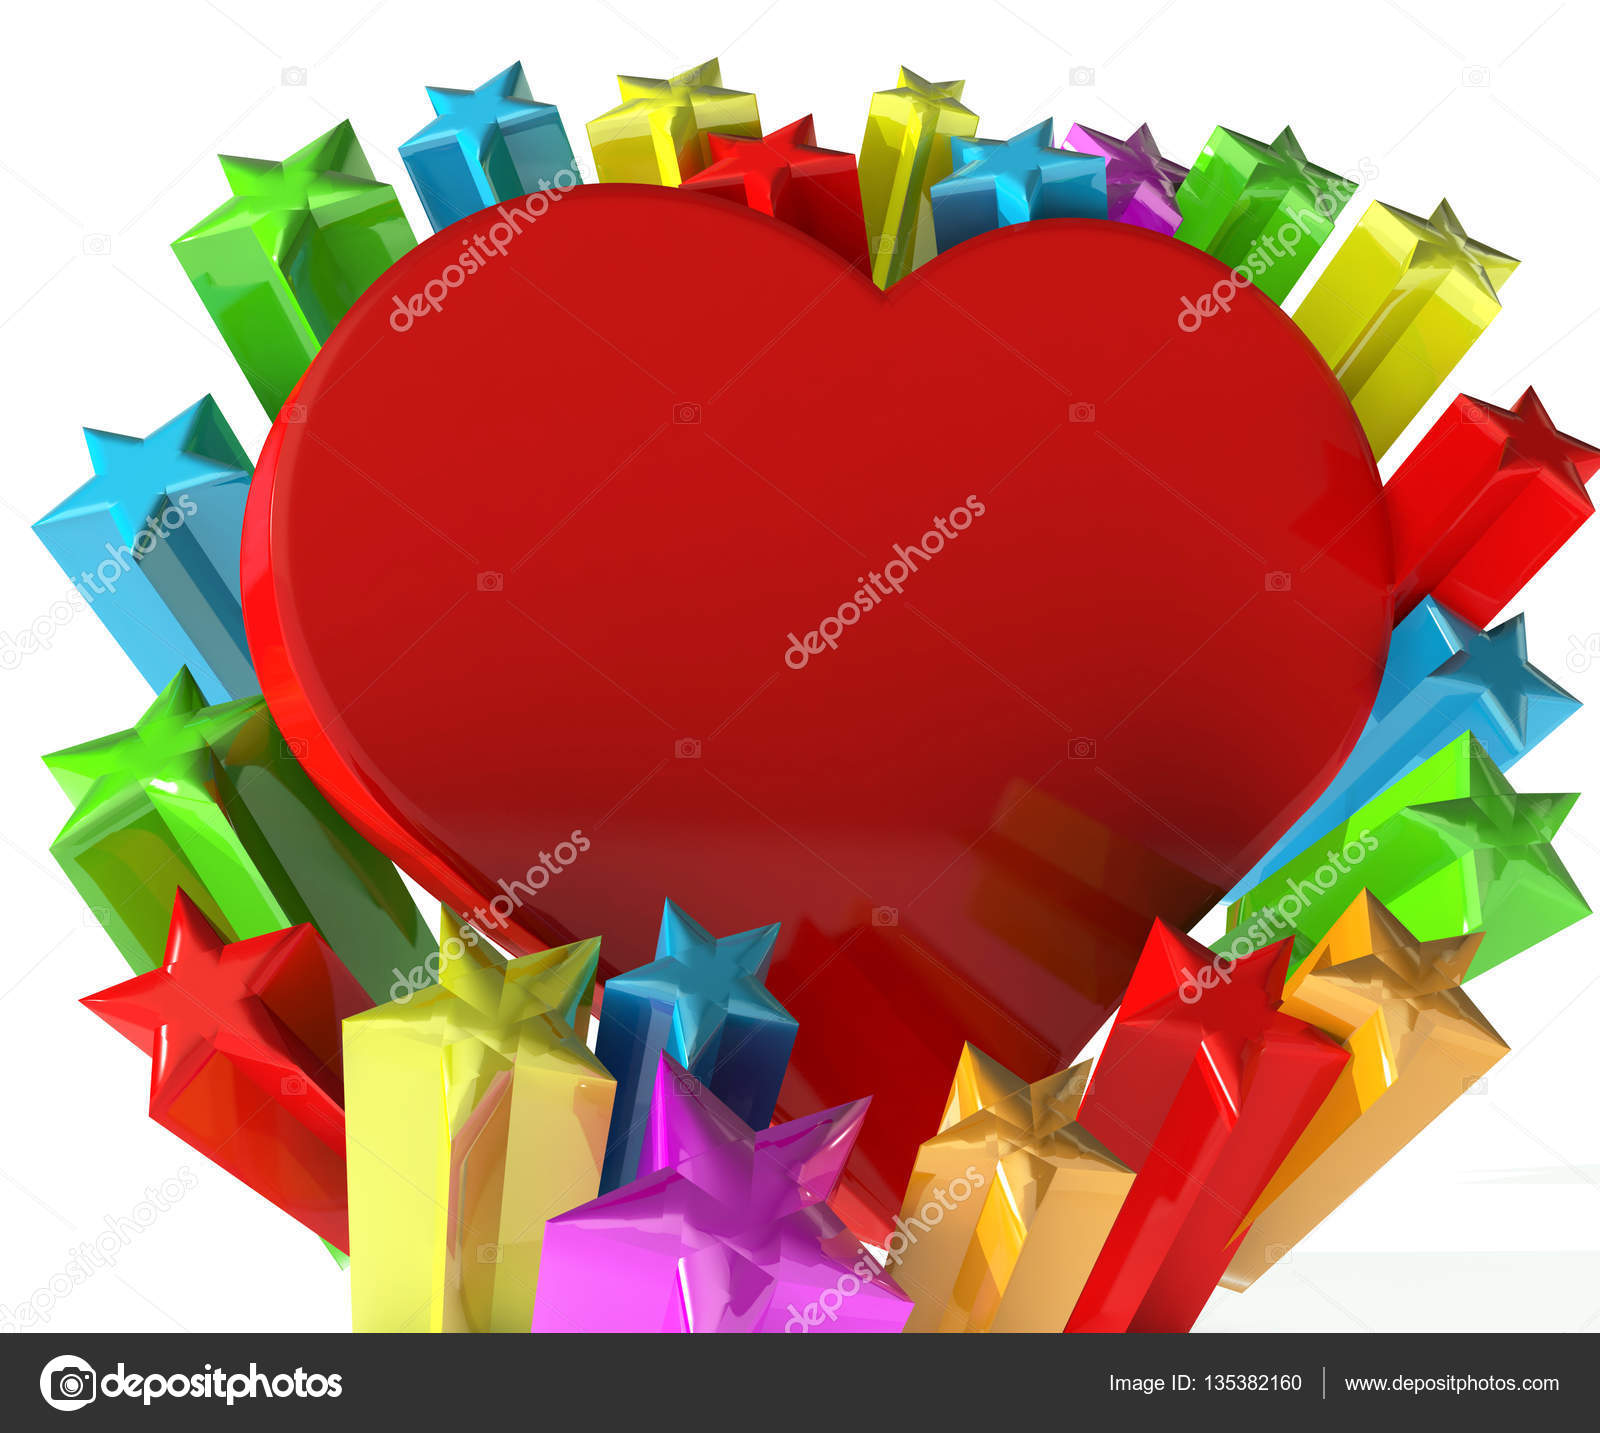 Heart Of Love 3d Image With Stars Fireworks Greetings Card Image